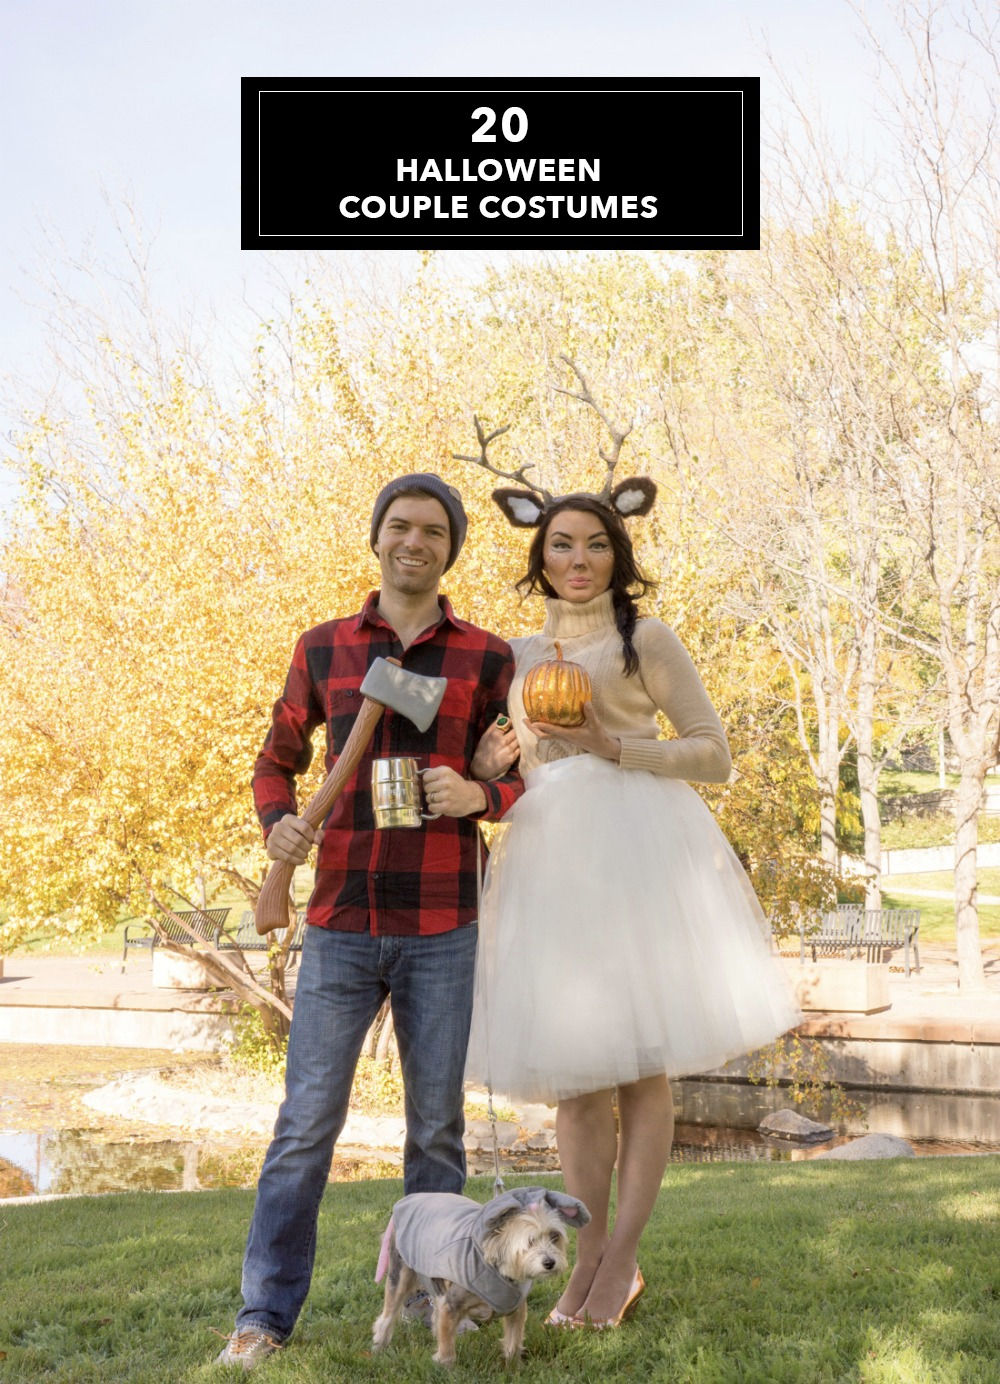 GoT Costumes That will Kill (not literally) This Halloween!